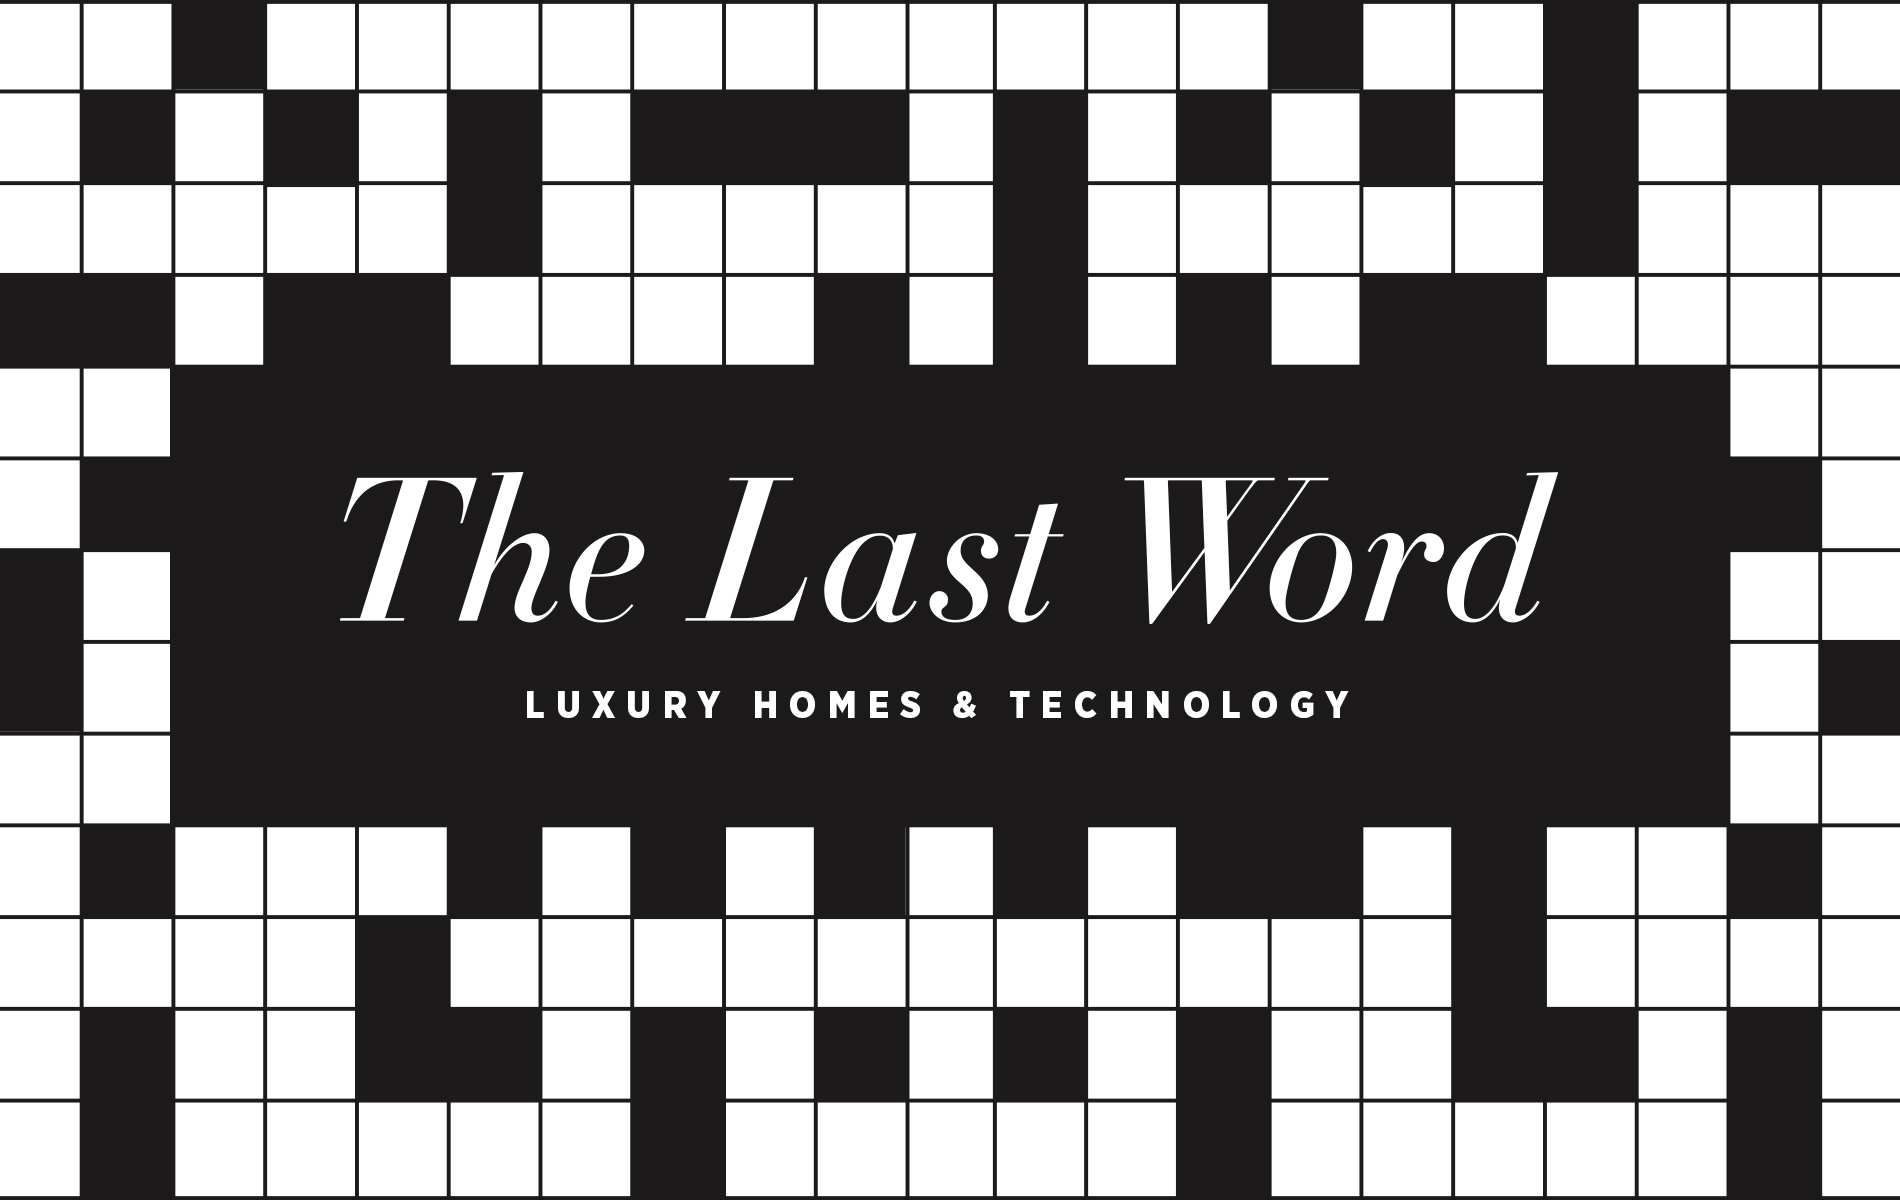 VIE Magazine The Last Word crossword puzzle , VIE February 2019 Luxury Homes & Technology issue